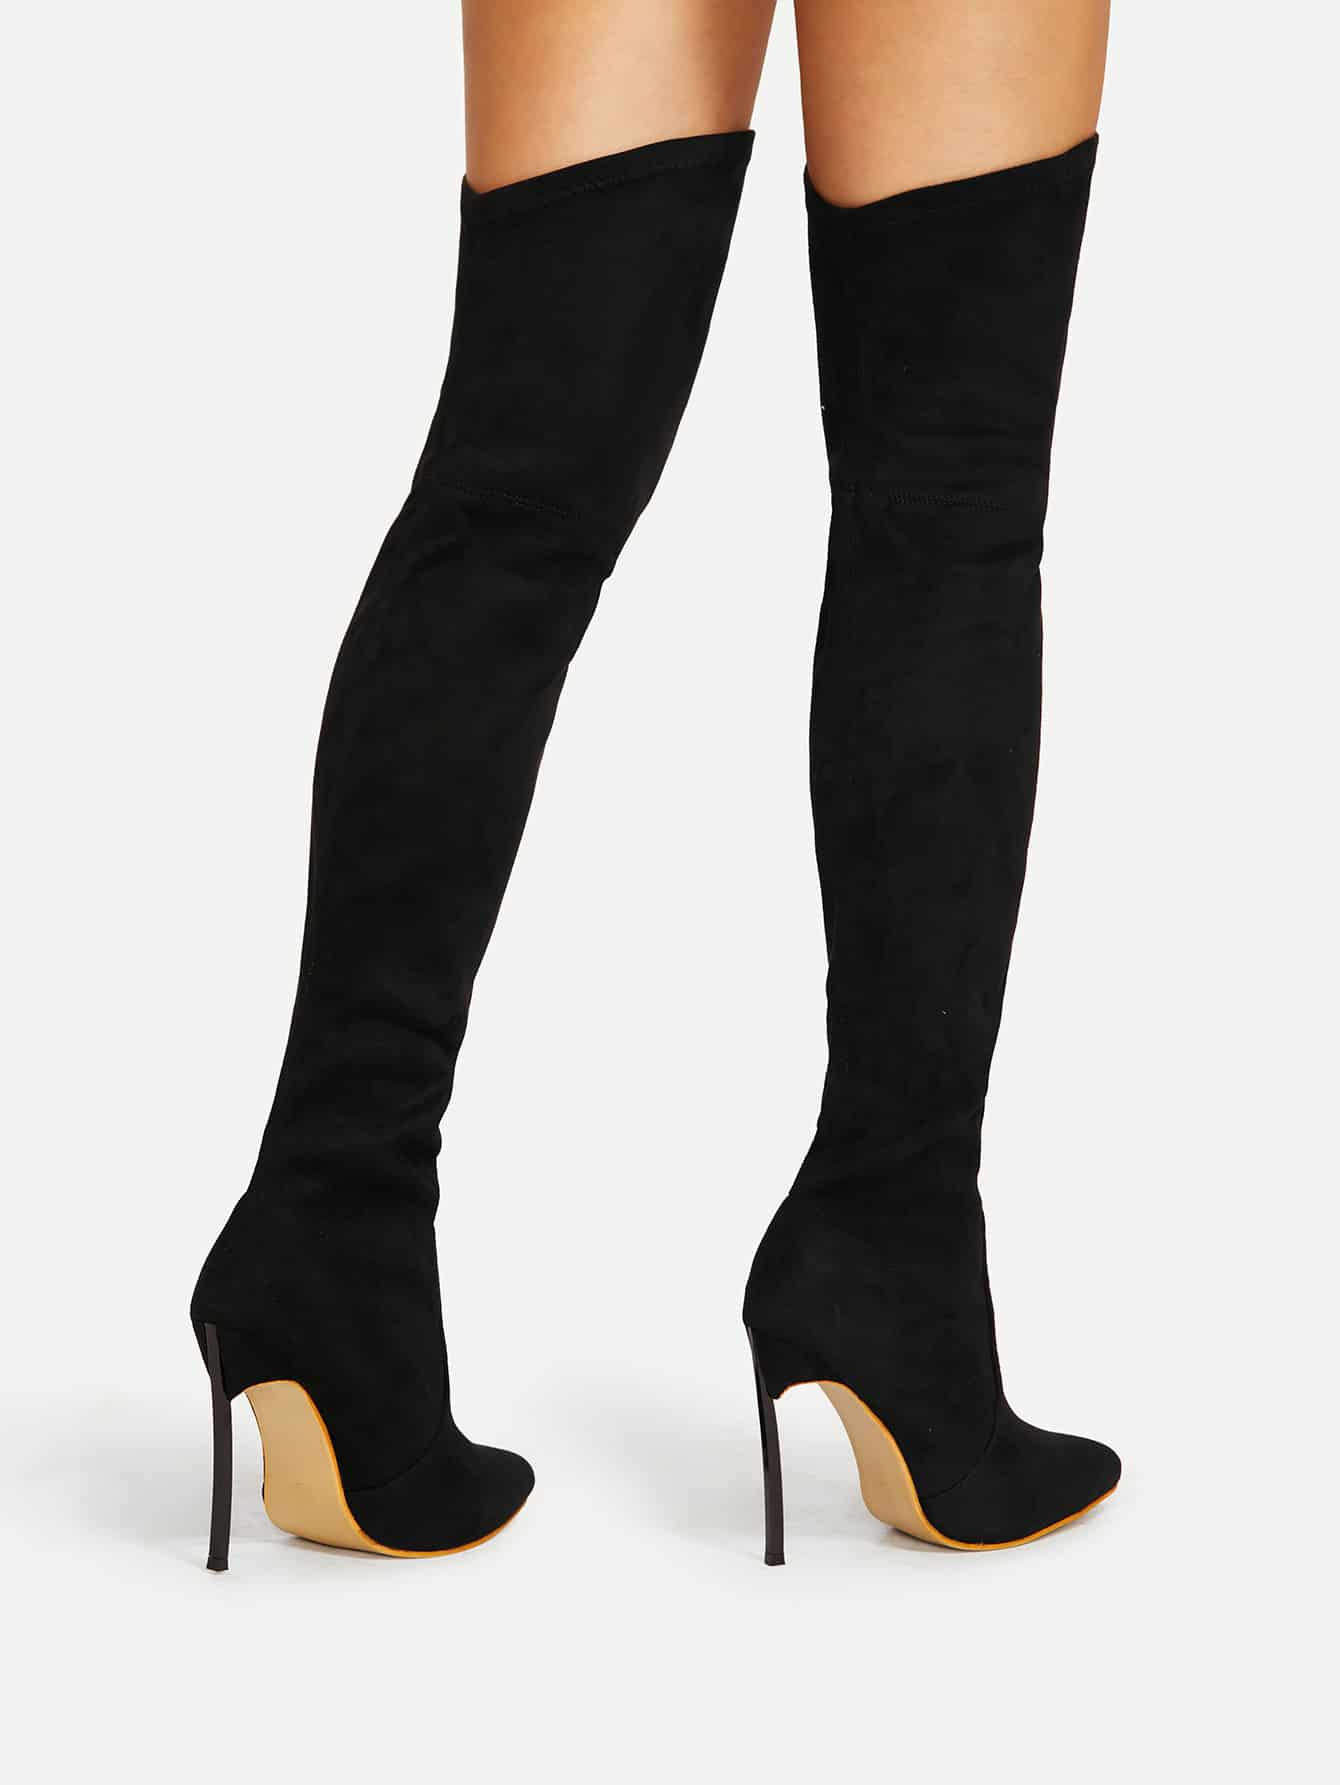 646710b1767 Pointed Toe Stiletto Heeled Thigh High Boots